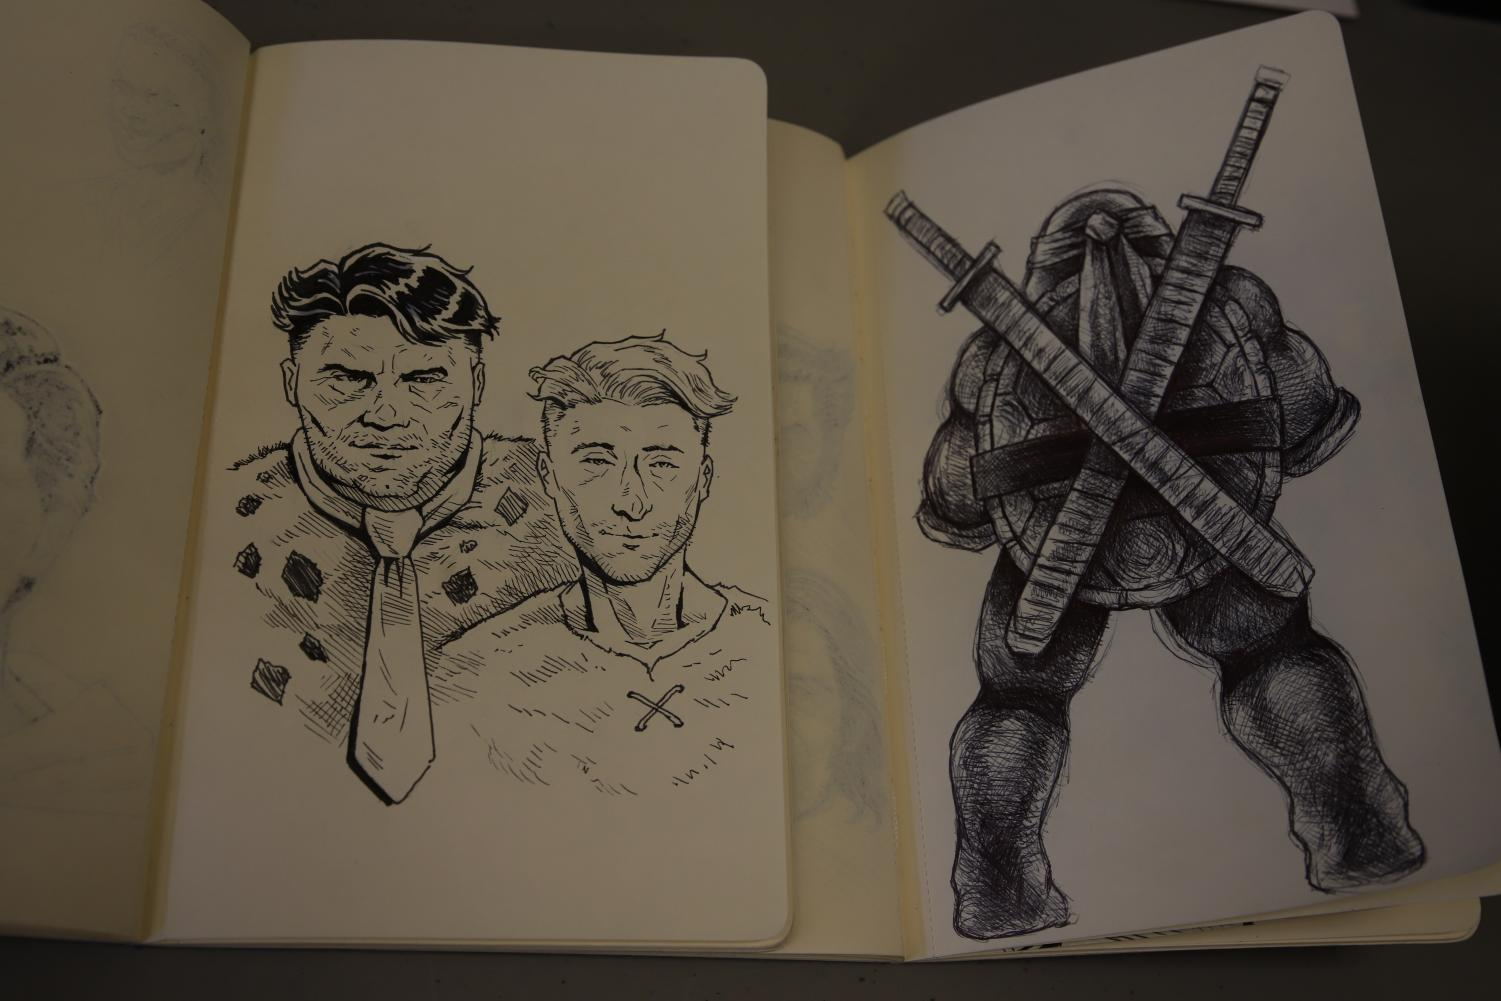 Notebook sketches from Gonzalez